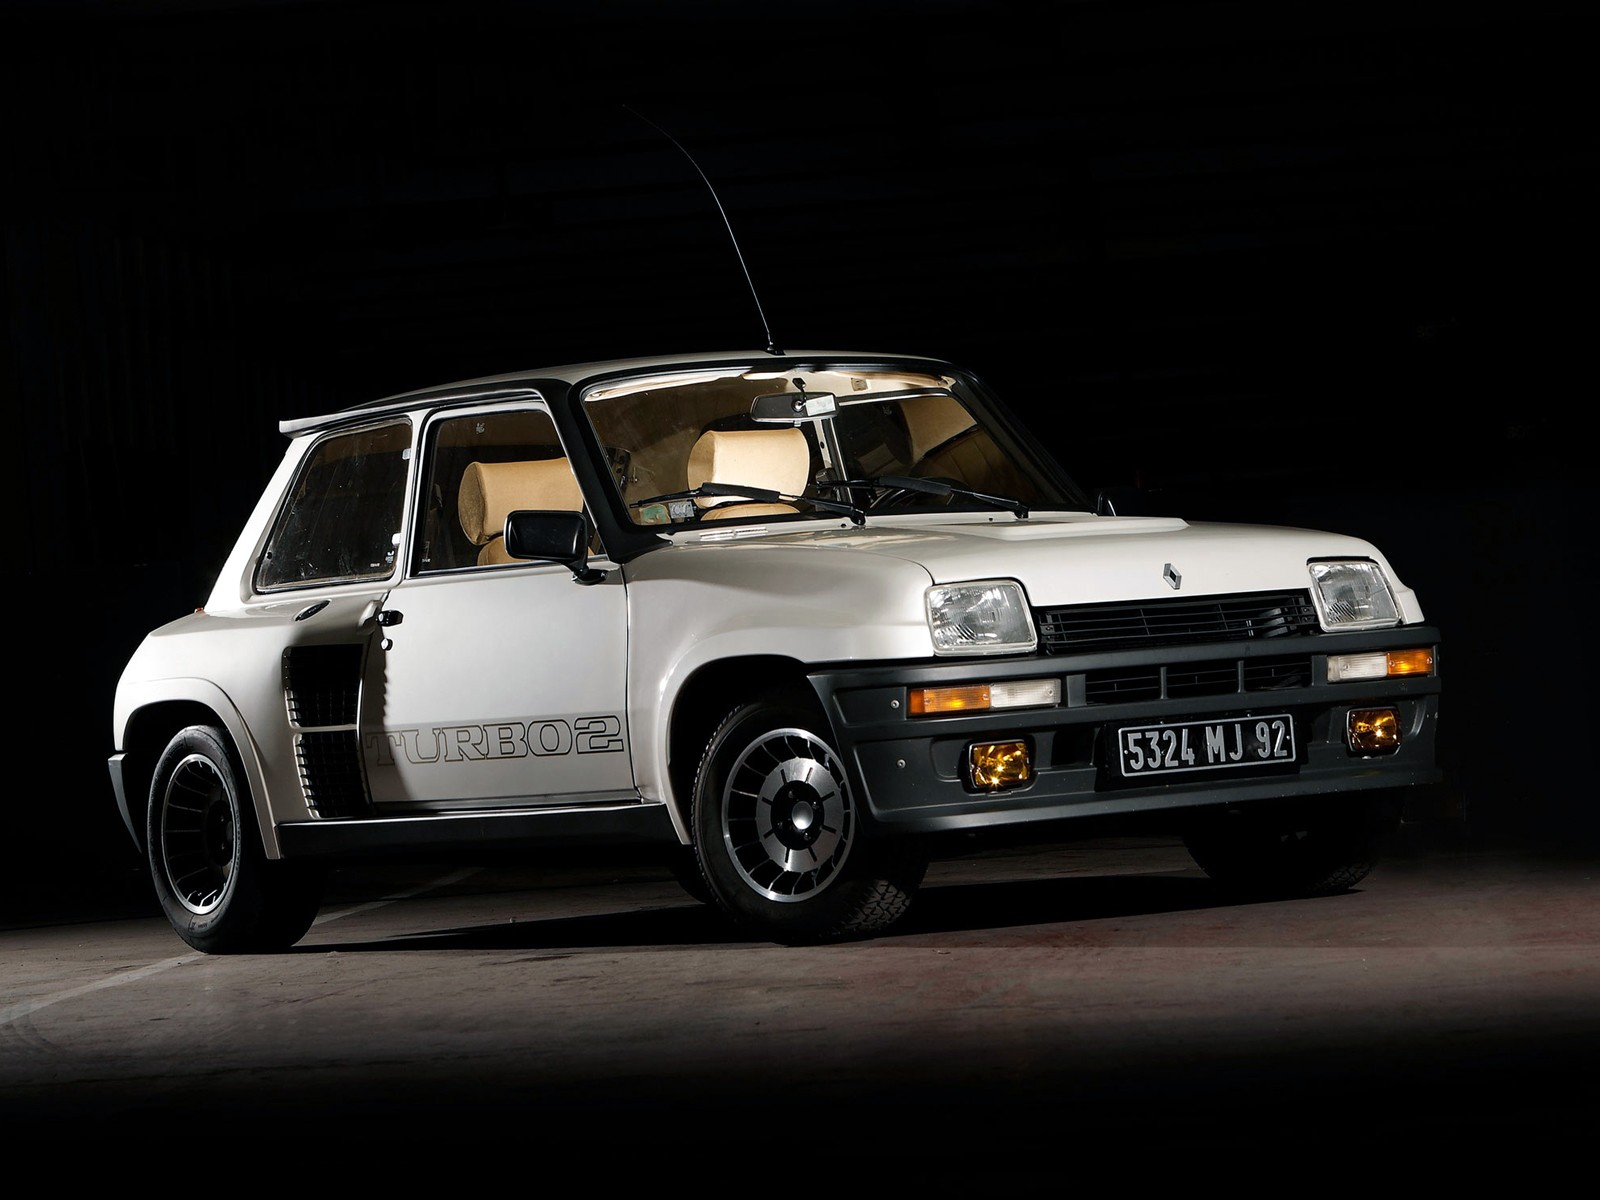 renault 5 turbo specs photos 1980 1981 1982 1983 1984 autoevolution. Black Bedroom Furniture Sets. Home Design Ideas